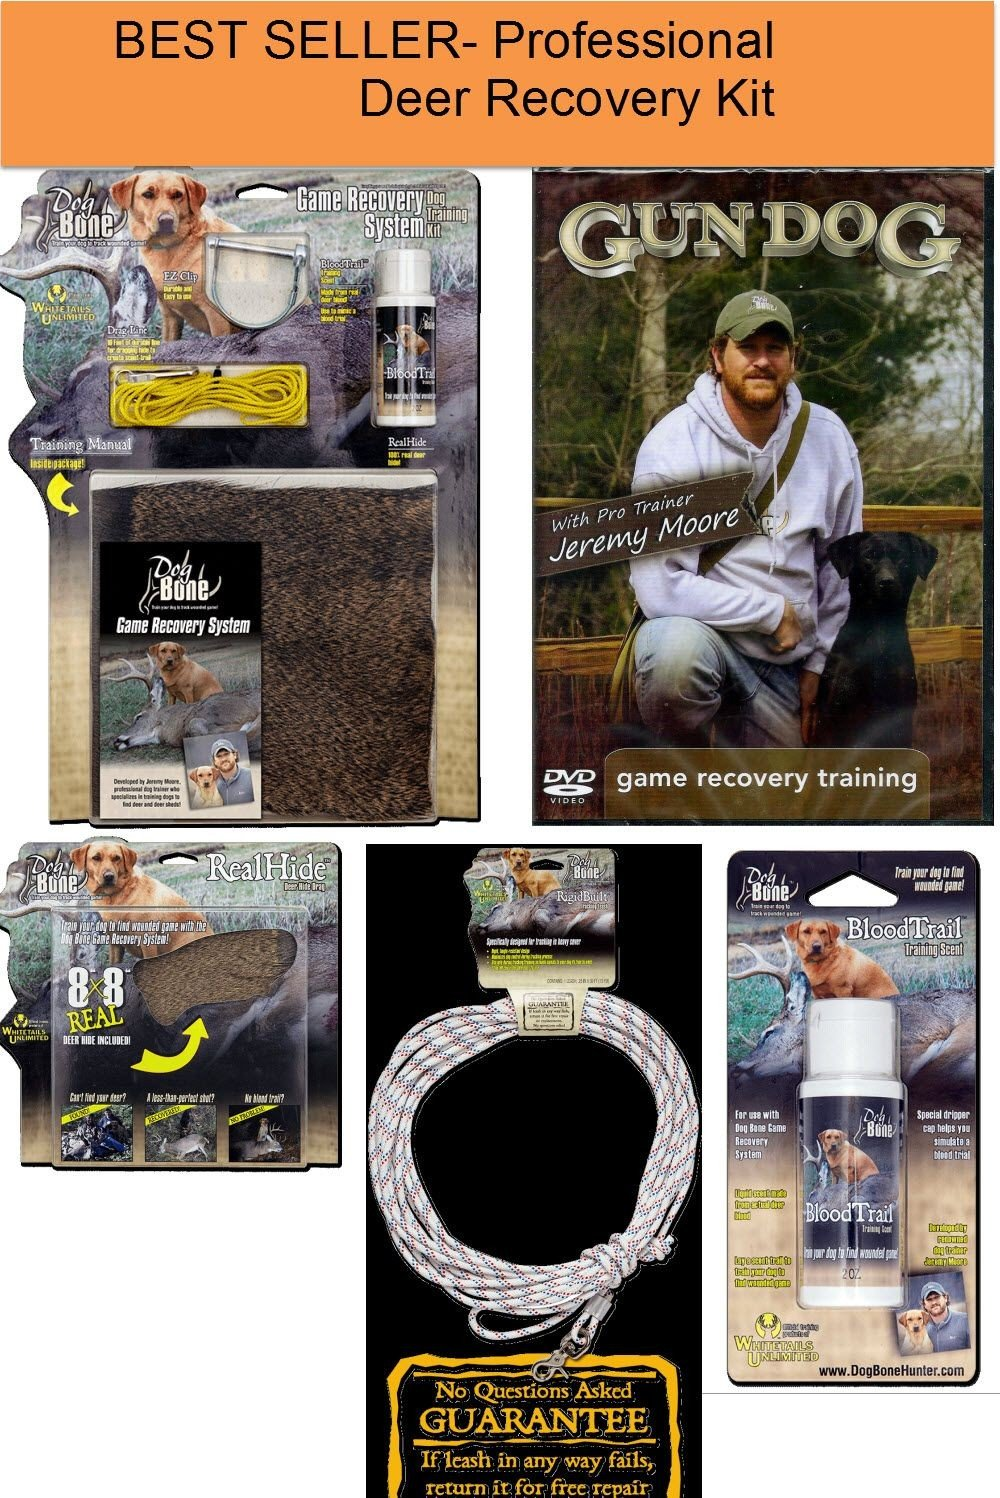 Wounded Deer Professional Dog Training System / Kit By Dog Bone Products DeerTrackingKit by Dokken